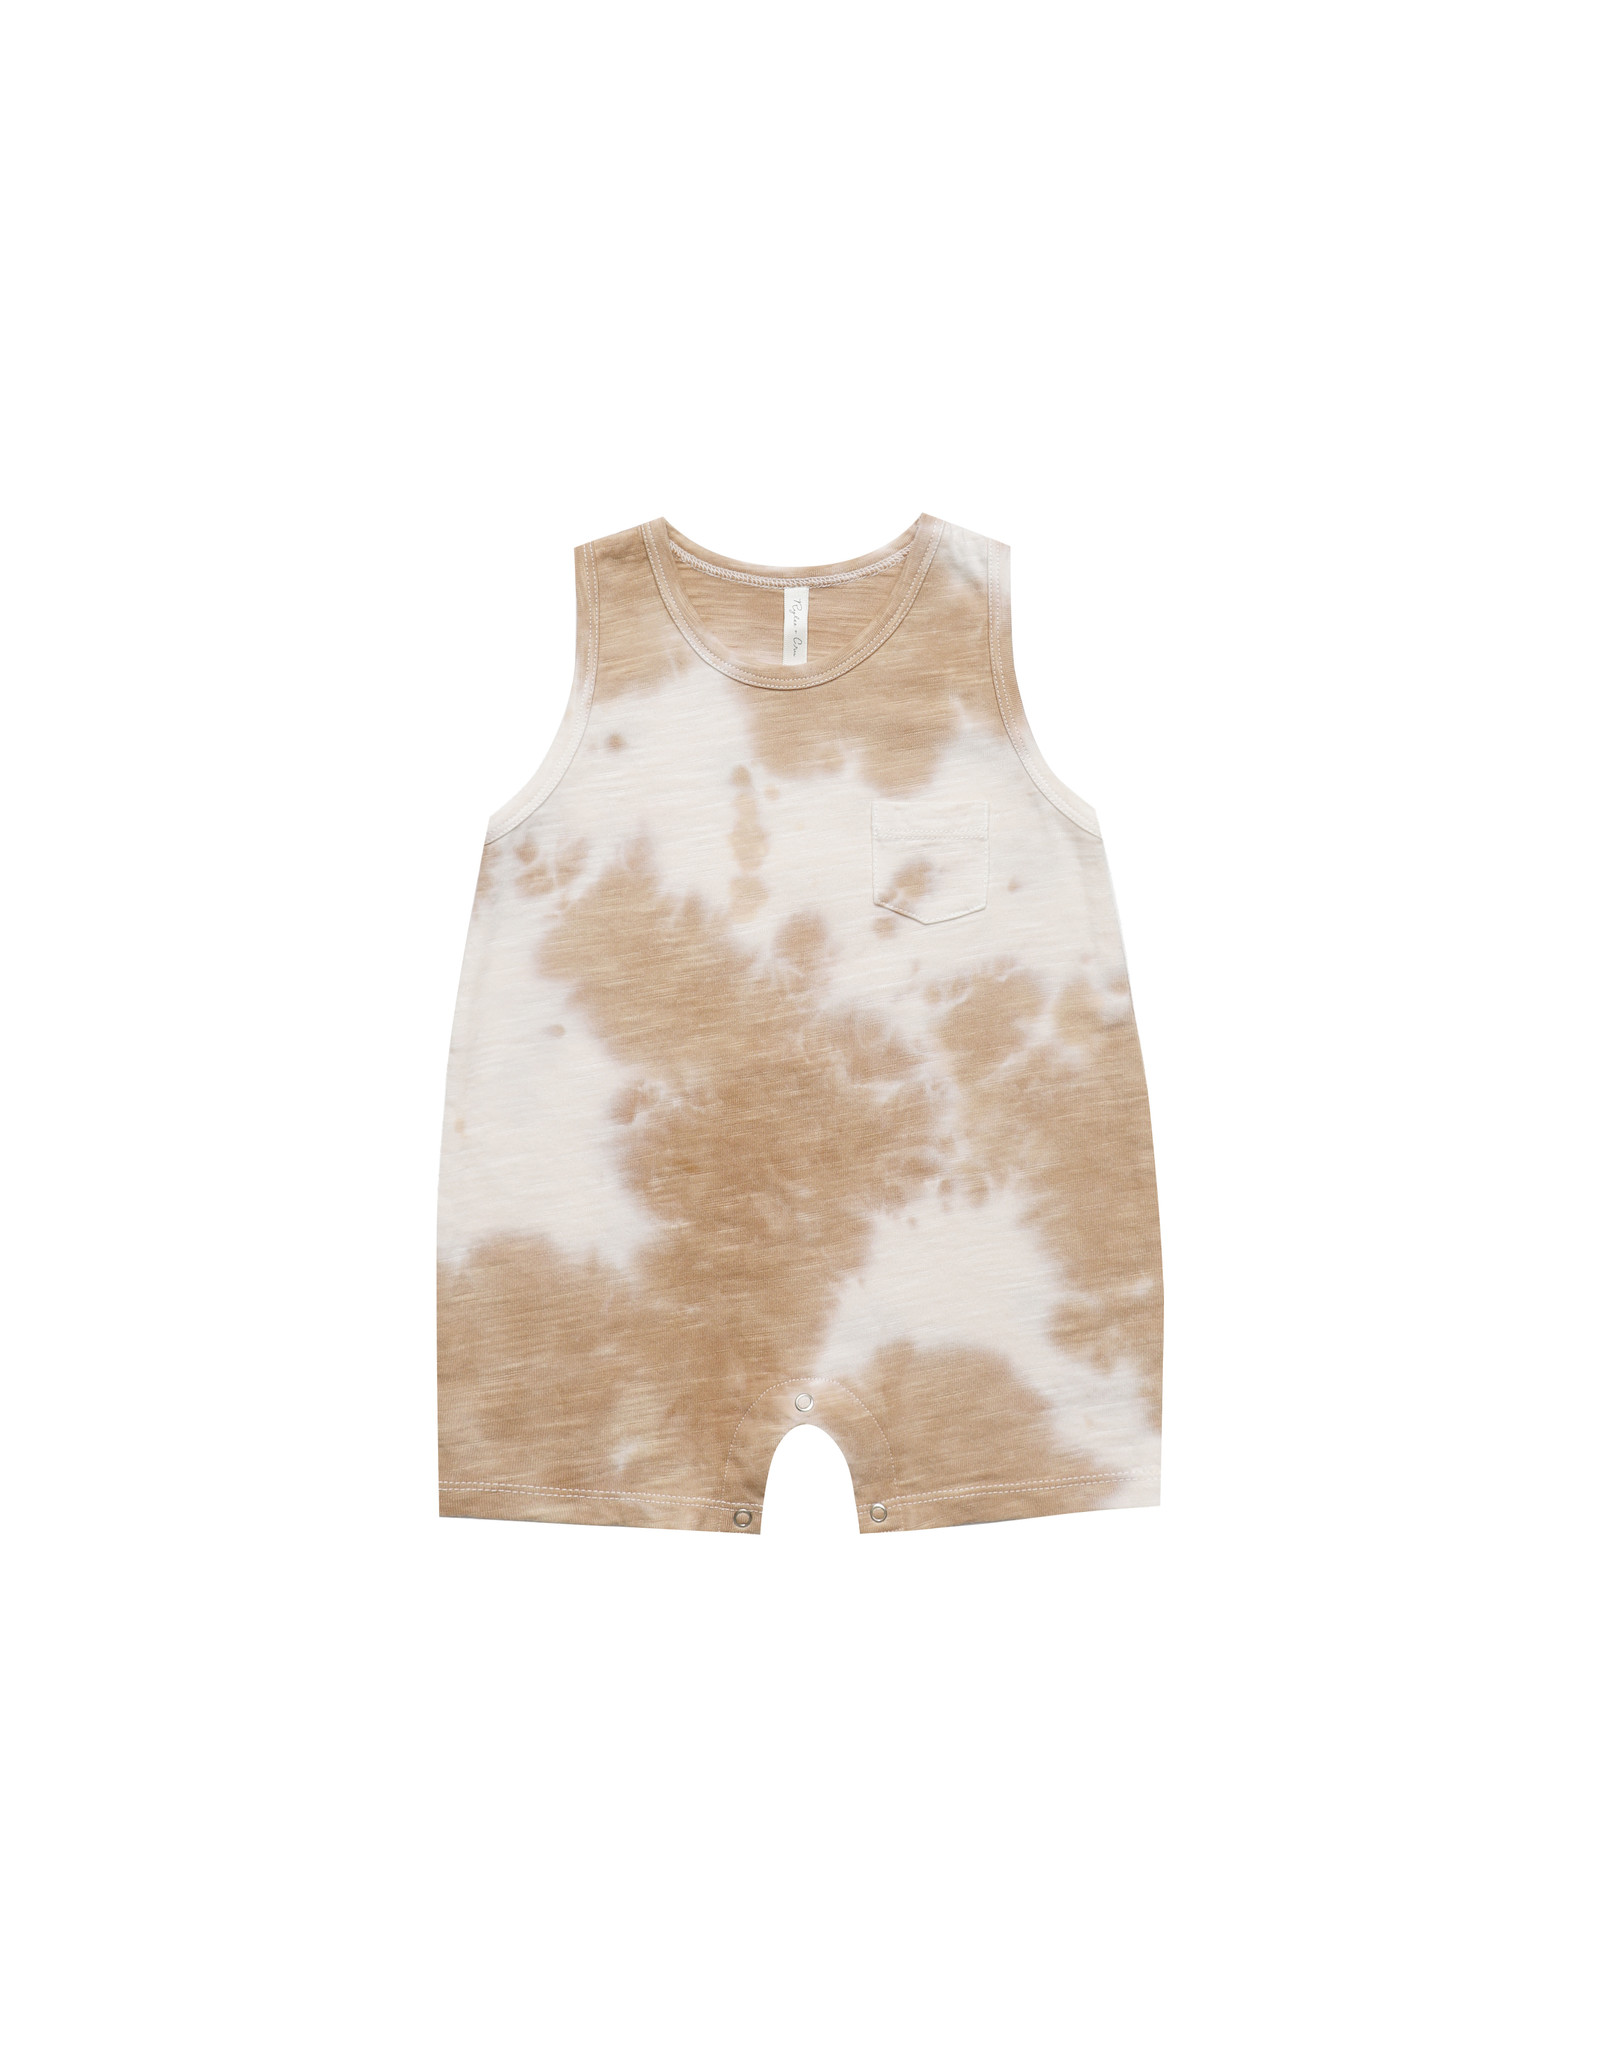 Rylee and Cru Tie Dye sleeveless onepiece